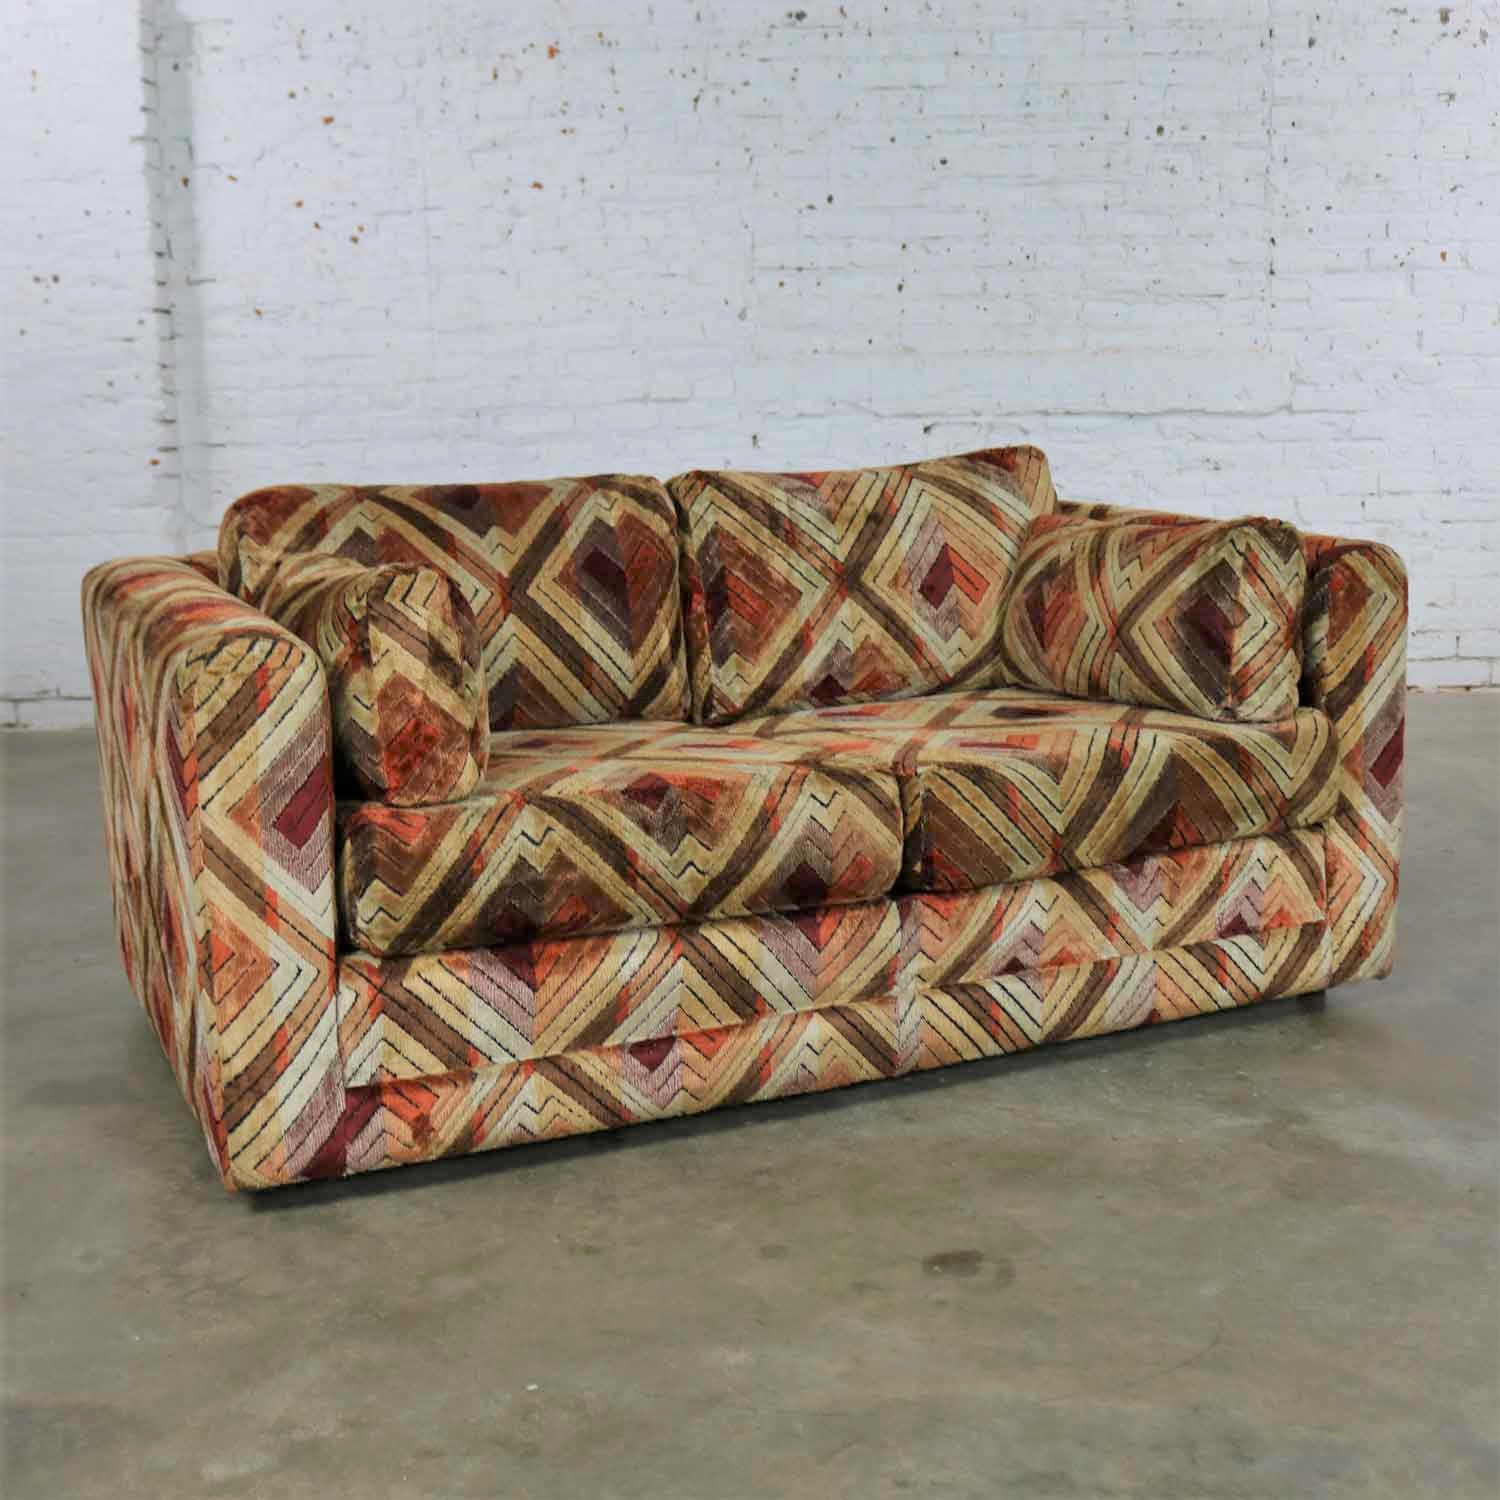 Phenomenal Tuxedo Mod Loveseat Sofa In Jack Lenor Larsen Style Fabric Caraccident5 Cool Chair Designs And Ideas Caraccident5Info